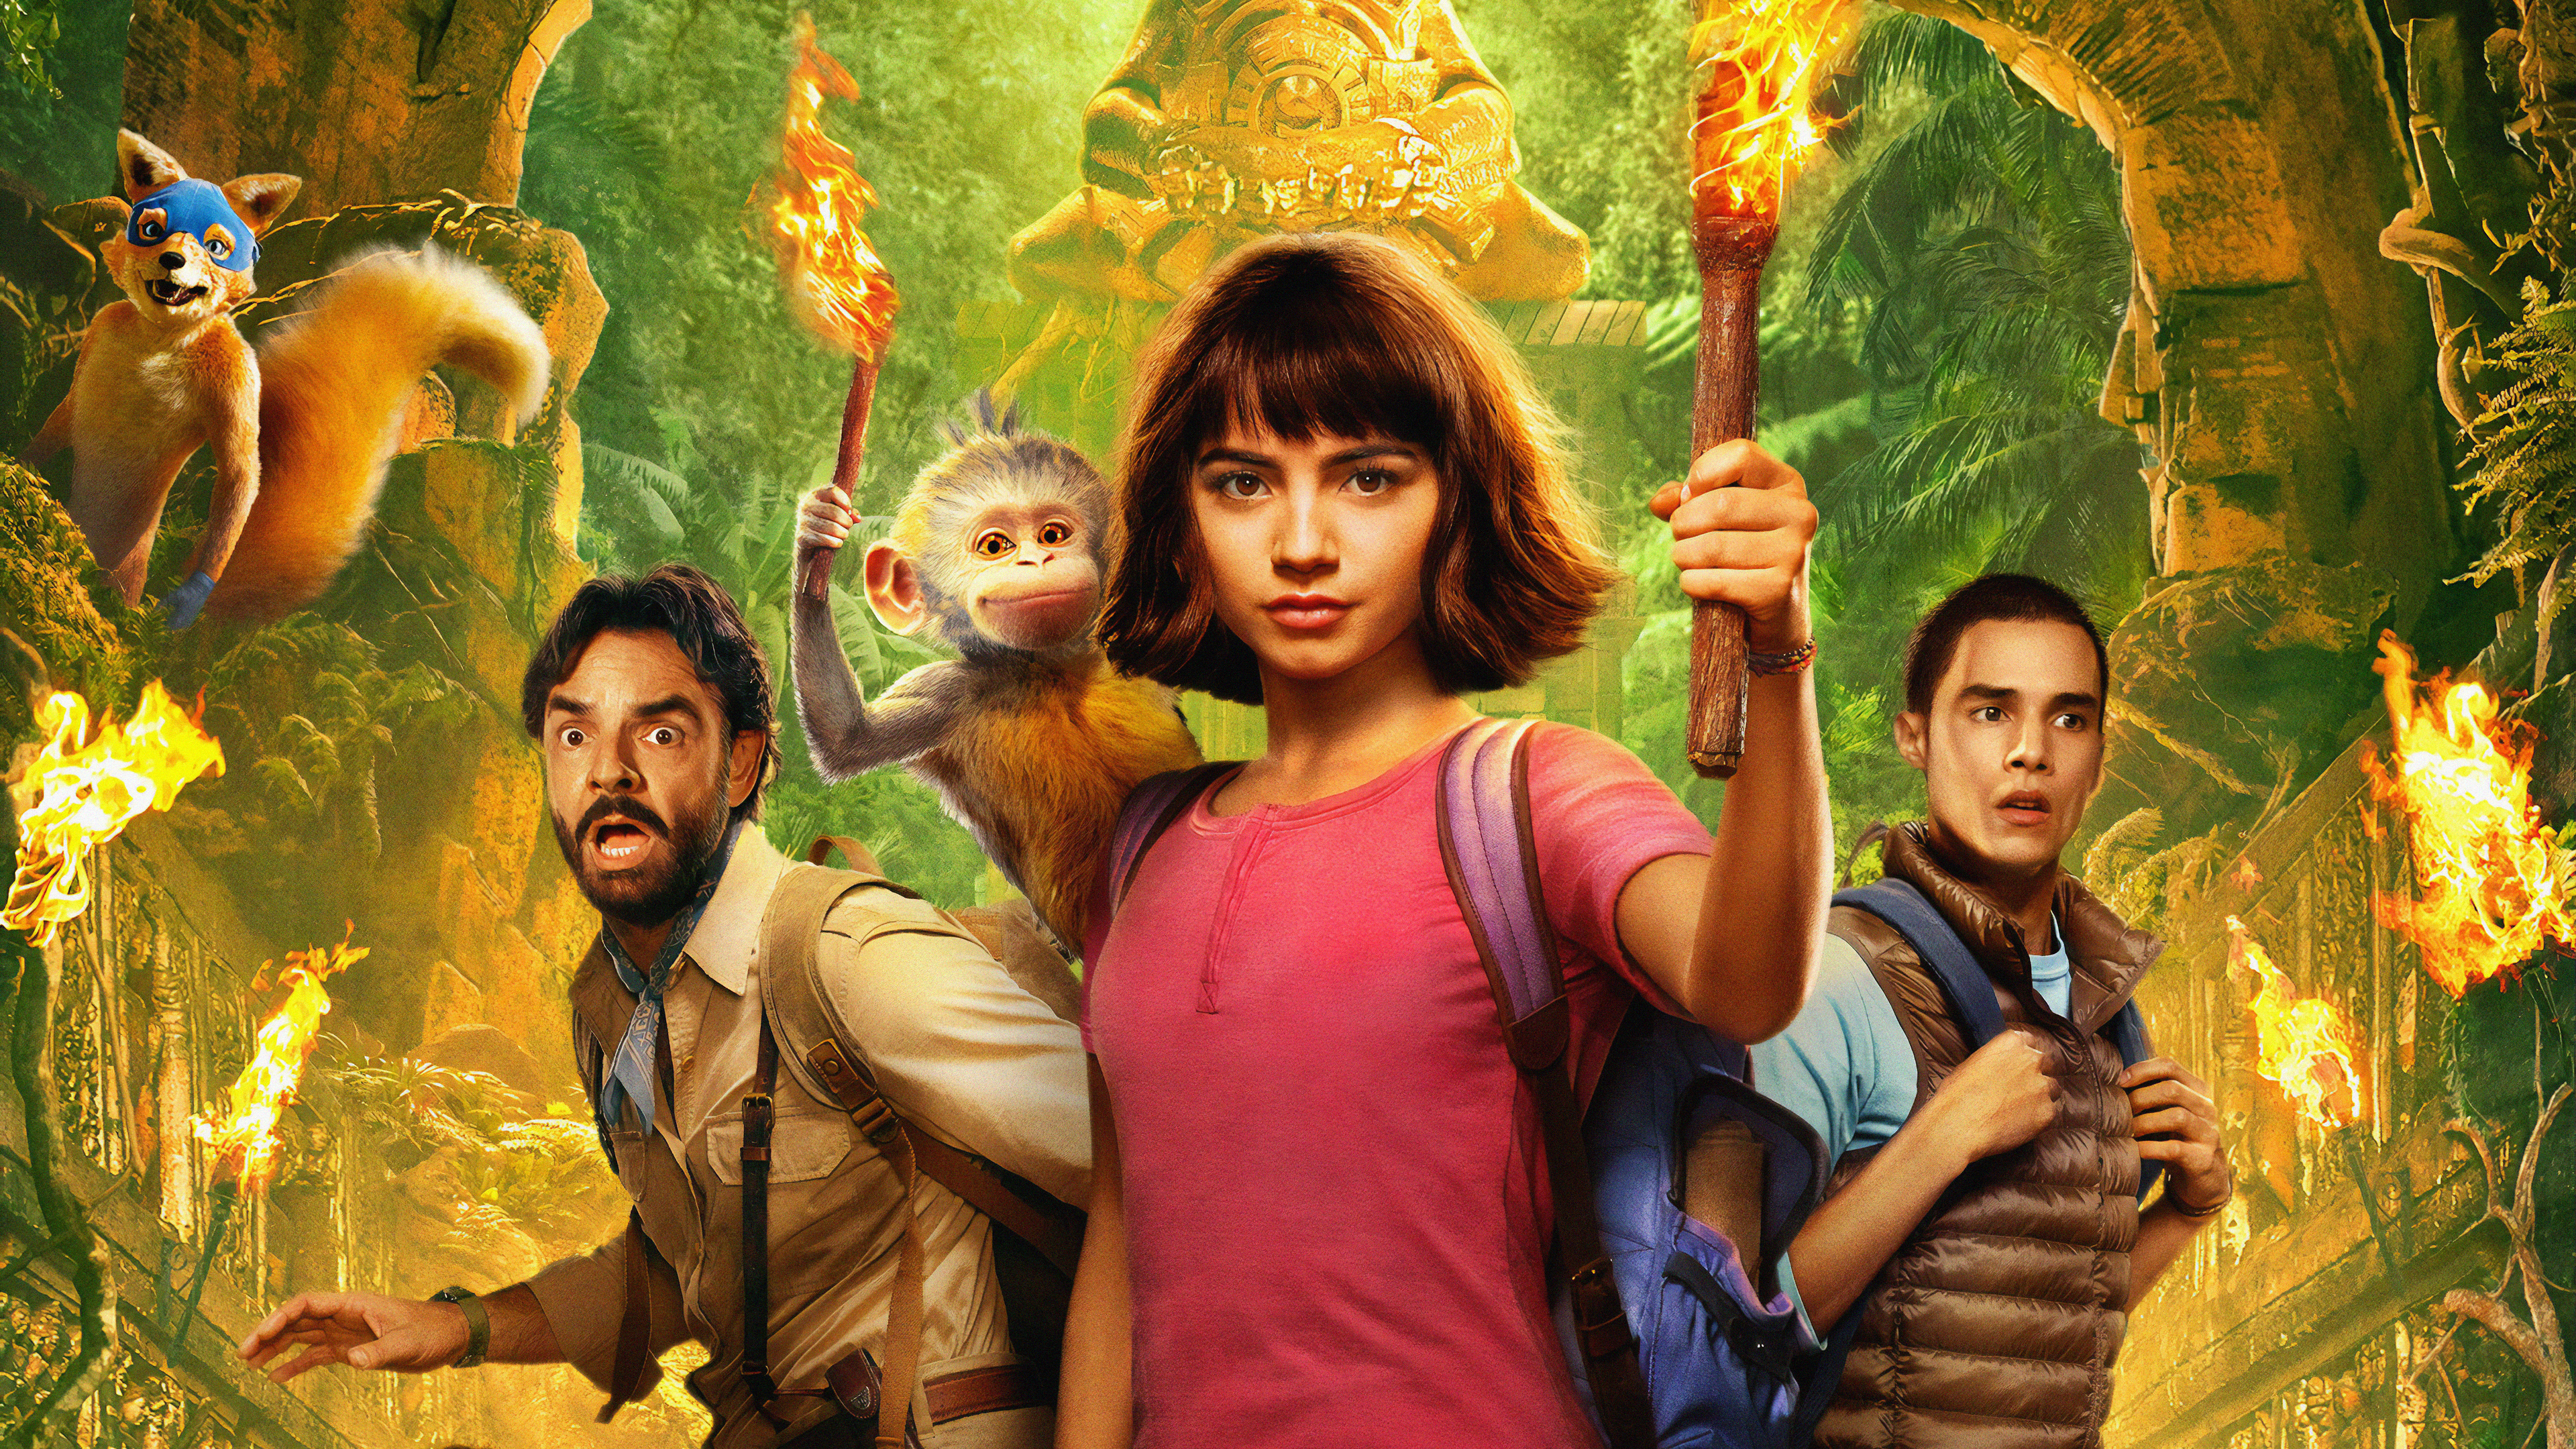 dora and the lost city of gold 1563220881 - Dora And The Lost City Of Gold - movies wallpapers, isabela moner wallpapers, hd-wallpapers, dora the explorer wallpapers, dora and the lost city of gold wallpapers, 5k wallpapers, 4k-wallpapers, 2019 movies wallpapers